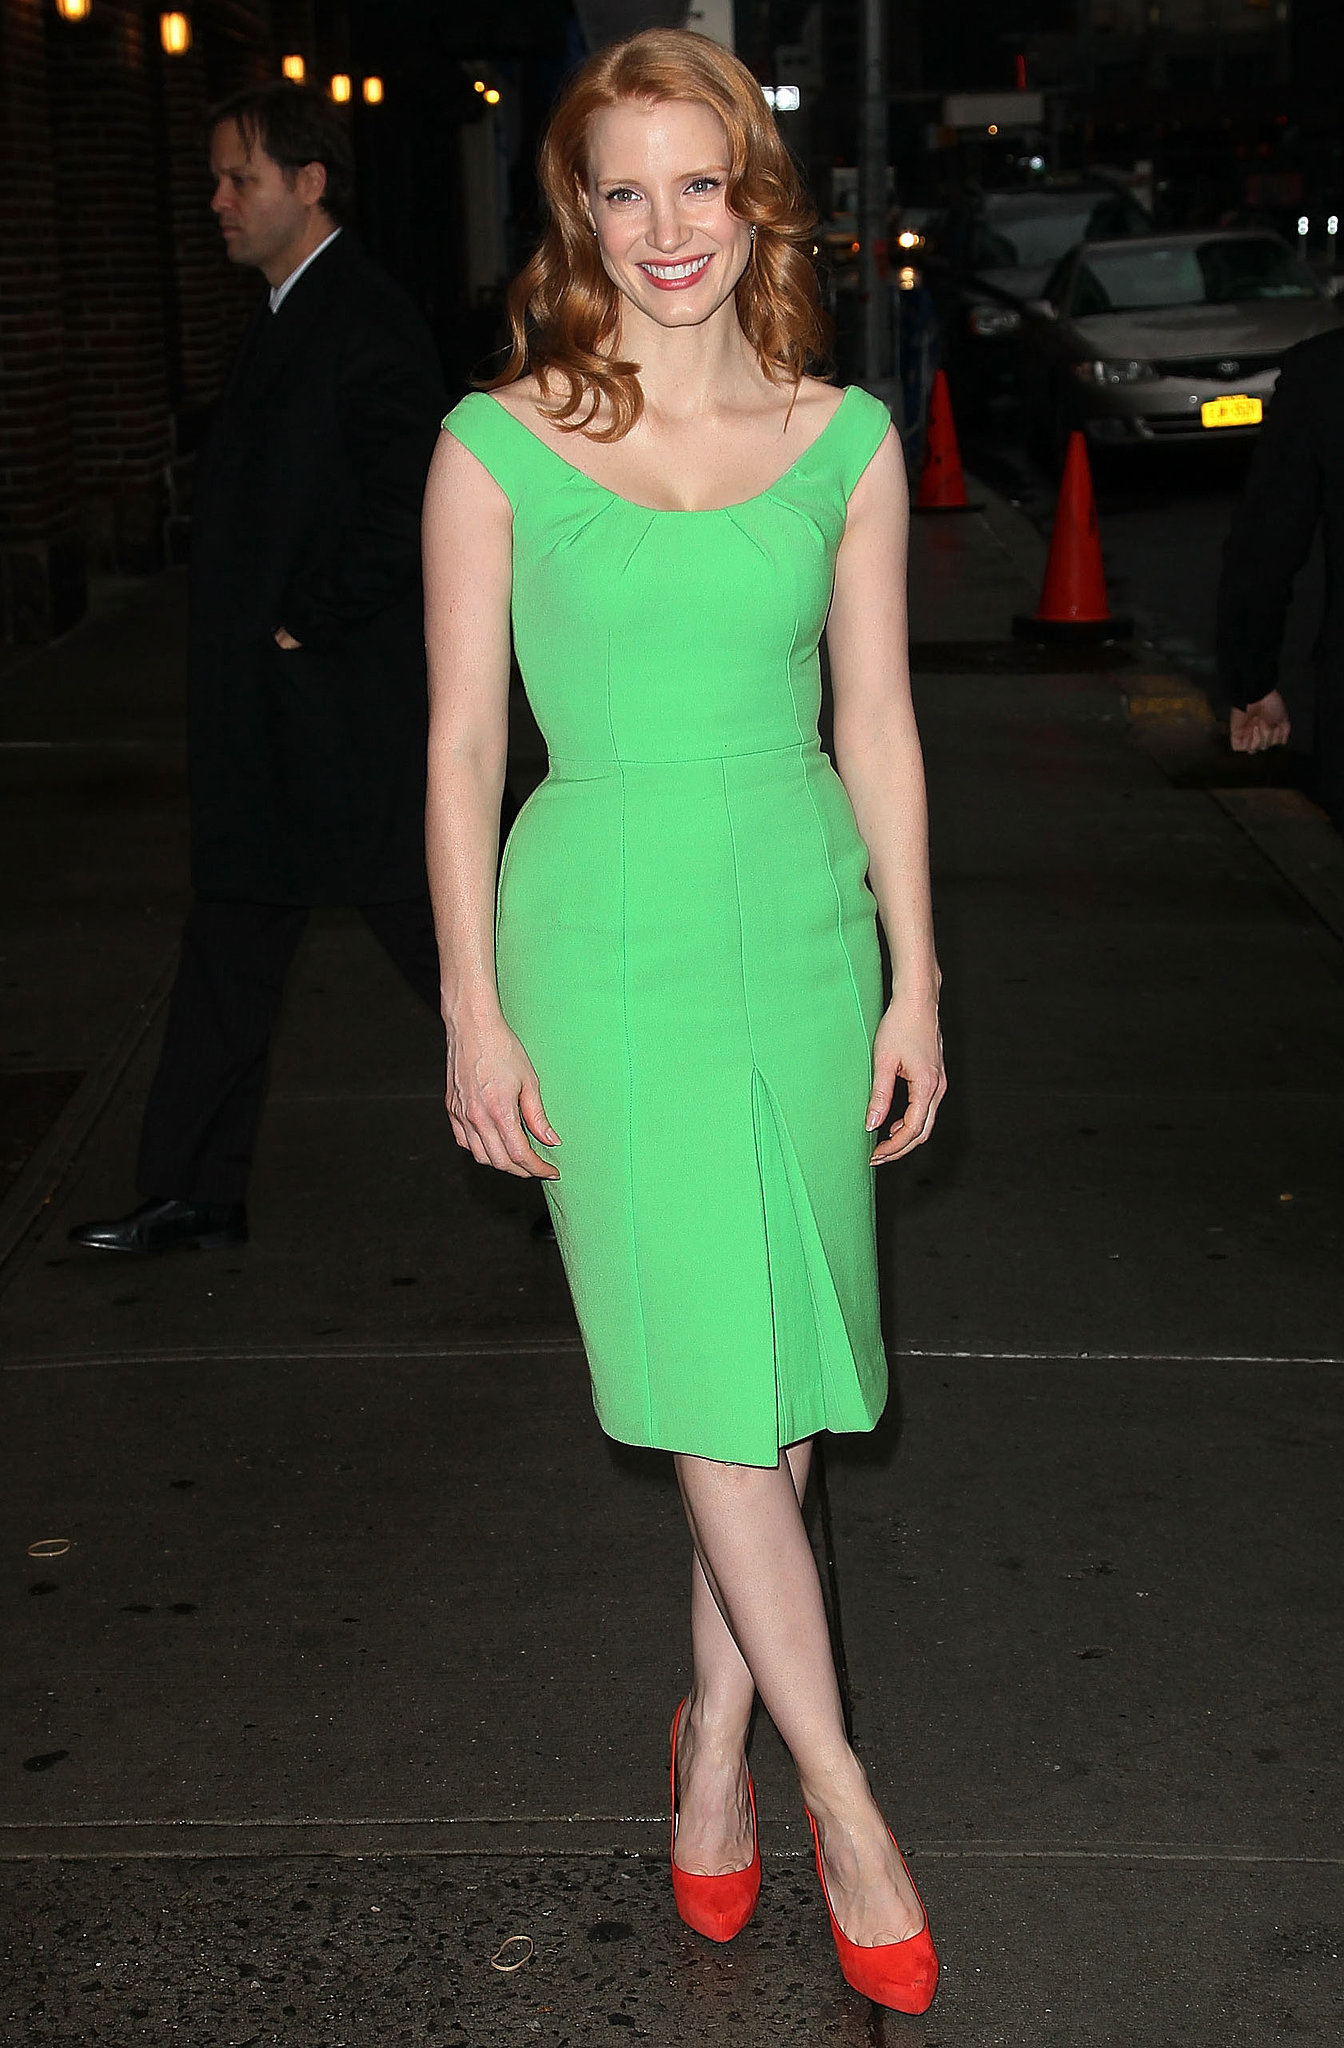 Green Dresses For St. Patrick's Day | POPSUGAR Fashion